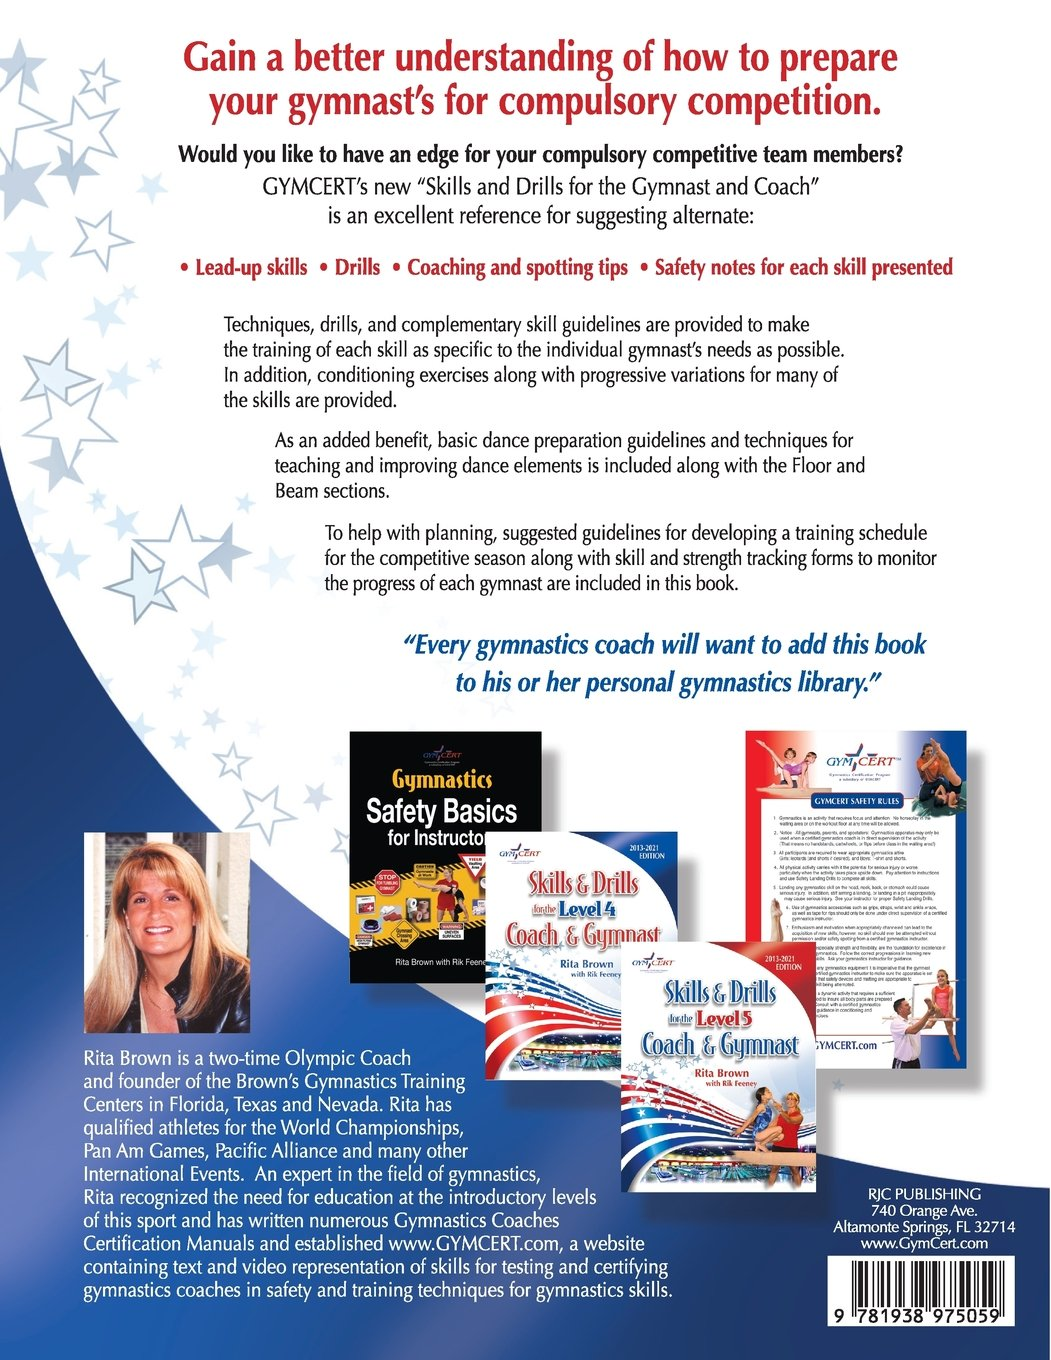 Gymnastics skills drills for the level 1 2 3 coach gymnast gymnastics skills drills for the level 1 2 3 coach gymnast rita brown 9781938975059 amazon books fandeluxe Image collections